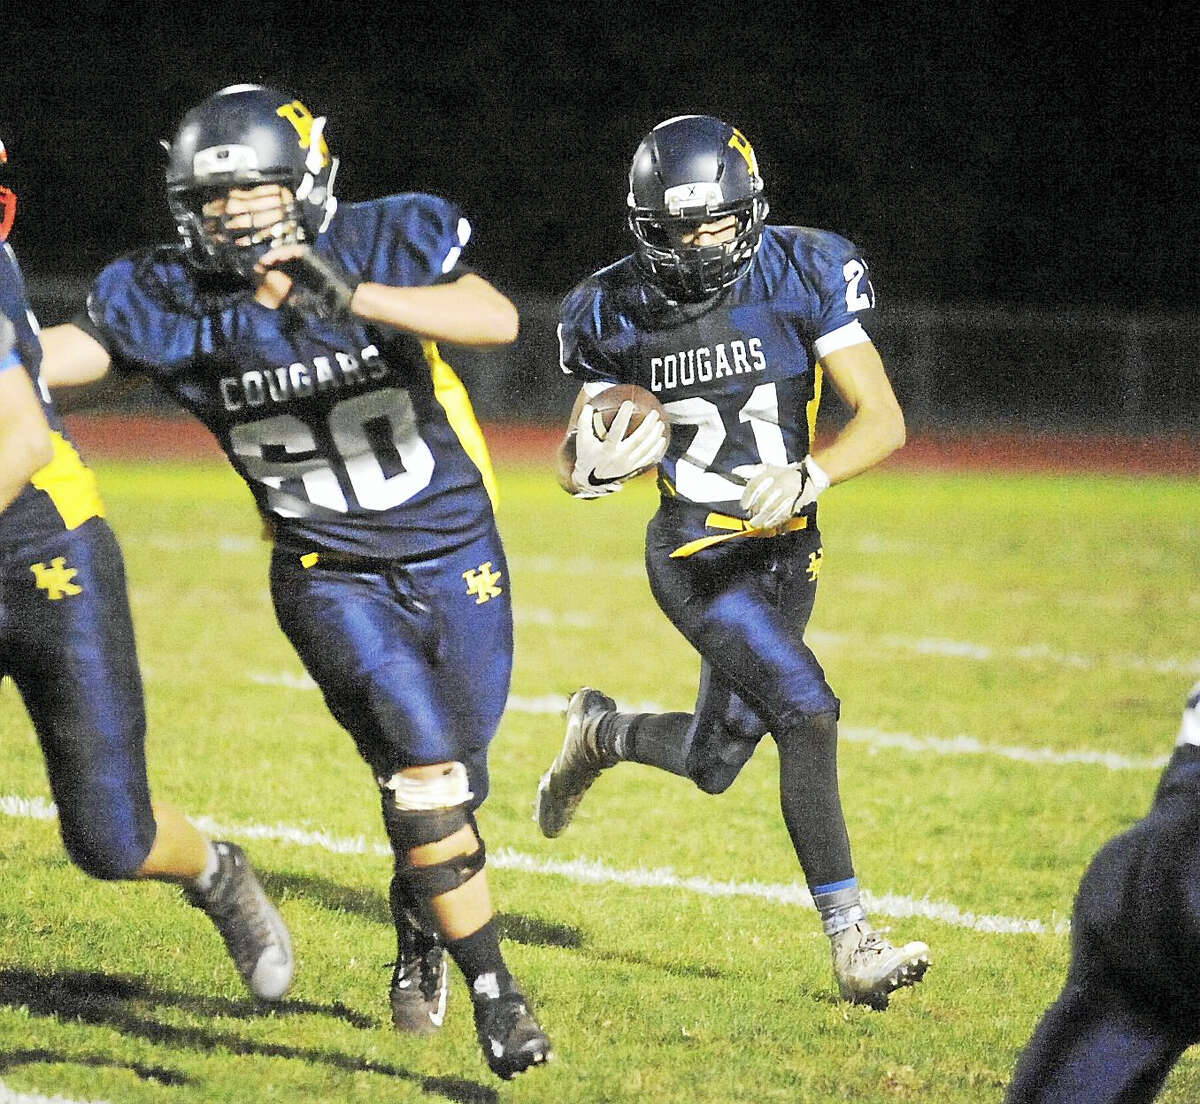 H-K senior Noah Vinci (21) runs behind the blocking of Kevin Dougherty (60). Vinci scored three touchdowns in the Cougars' 33-22 win over Coginchaug on Thursday night.